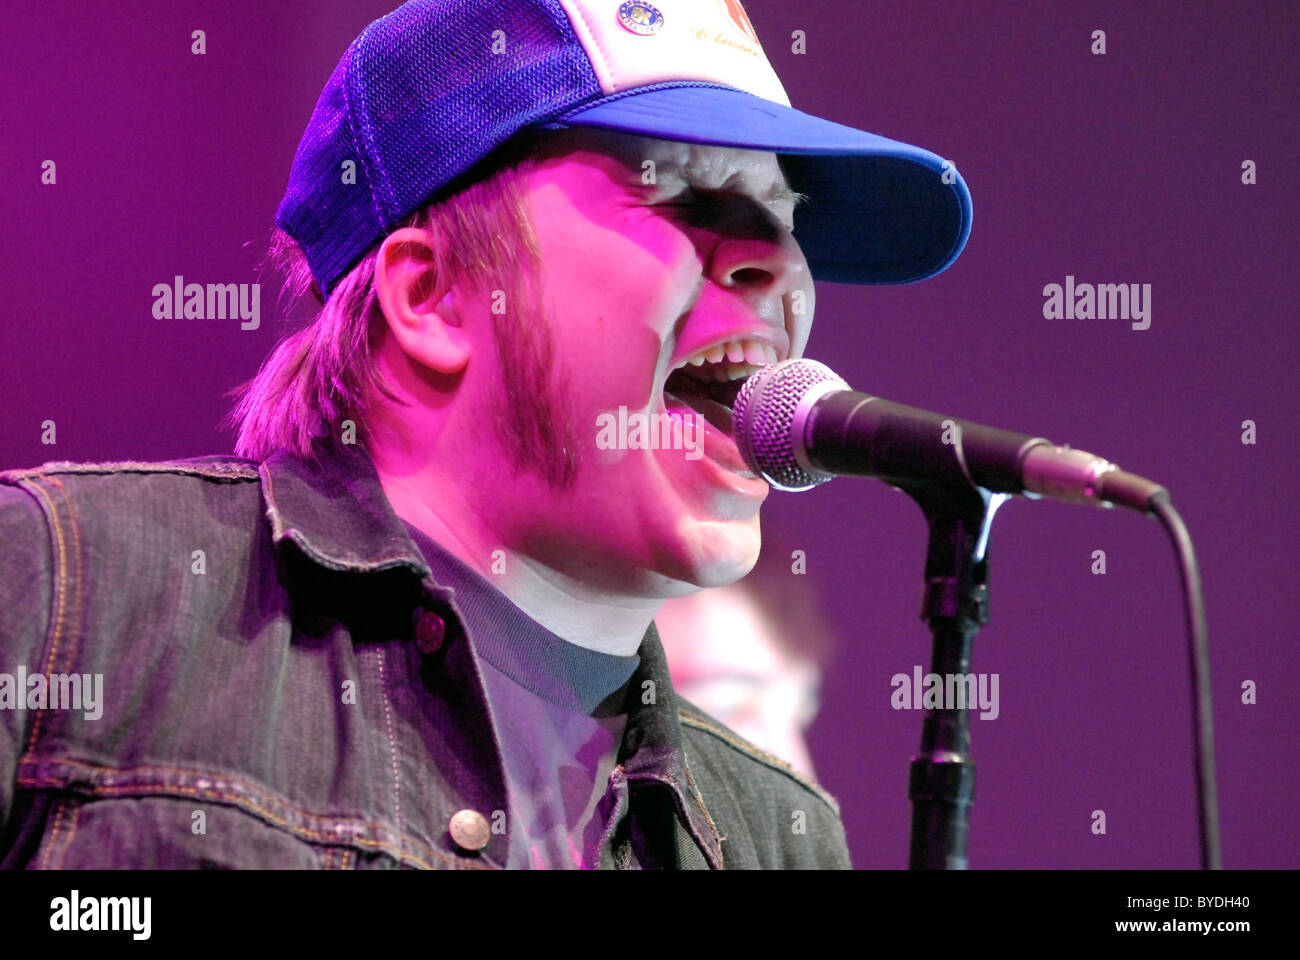 Patrick Stump Fall Out Boy Performing Live At The Honda Motor Corporation Headquarters Torrance California